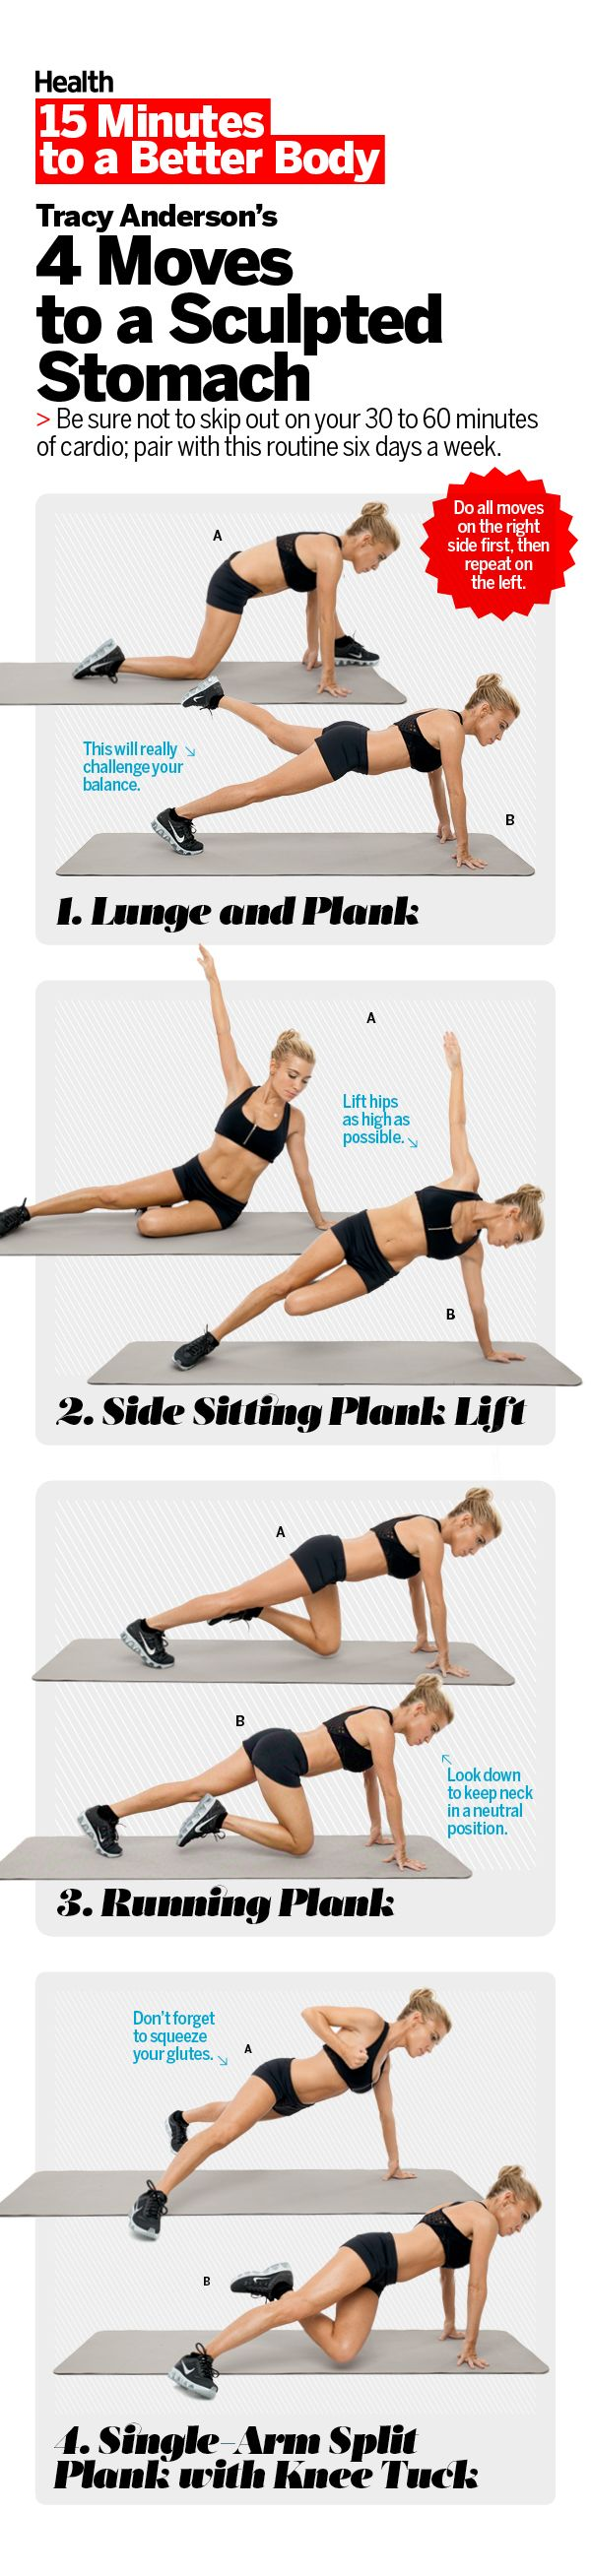 Ab Workouts: Our Top 10 Abs Exercises - Fitness Magazine